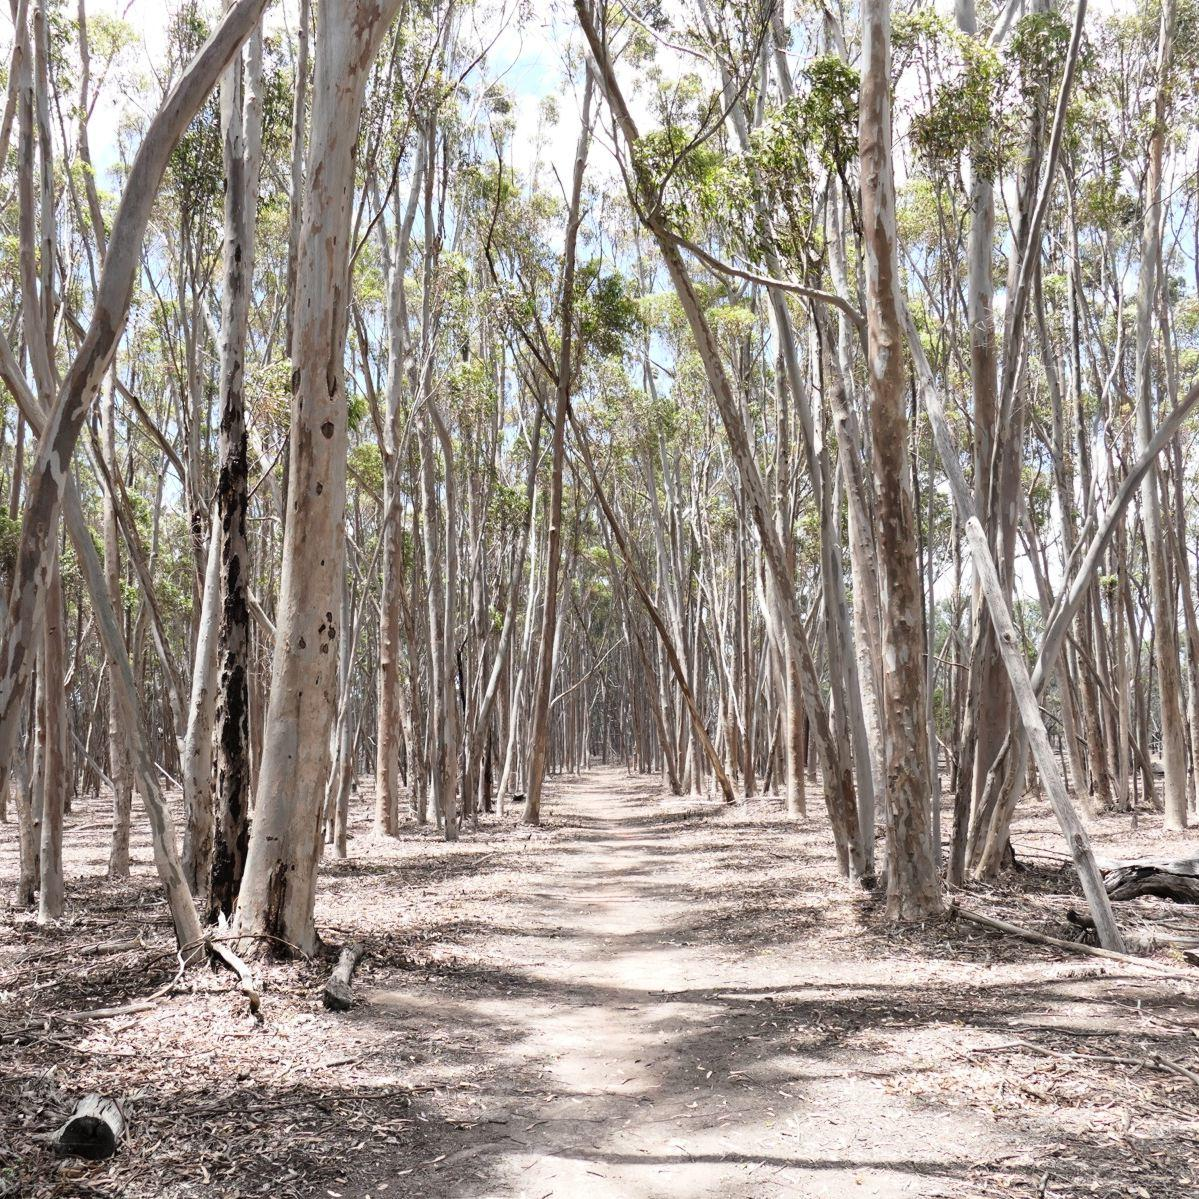 Dry Eucalyptus forests easily catch fire in extreme heat. Noah Strycker